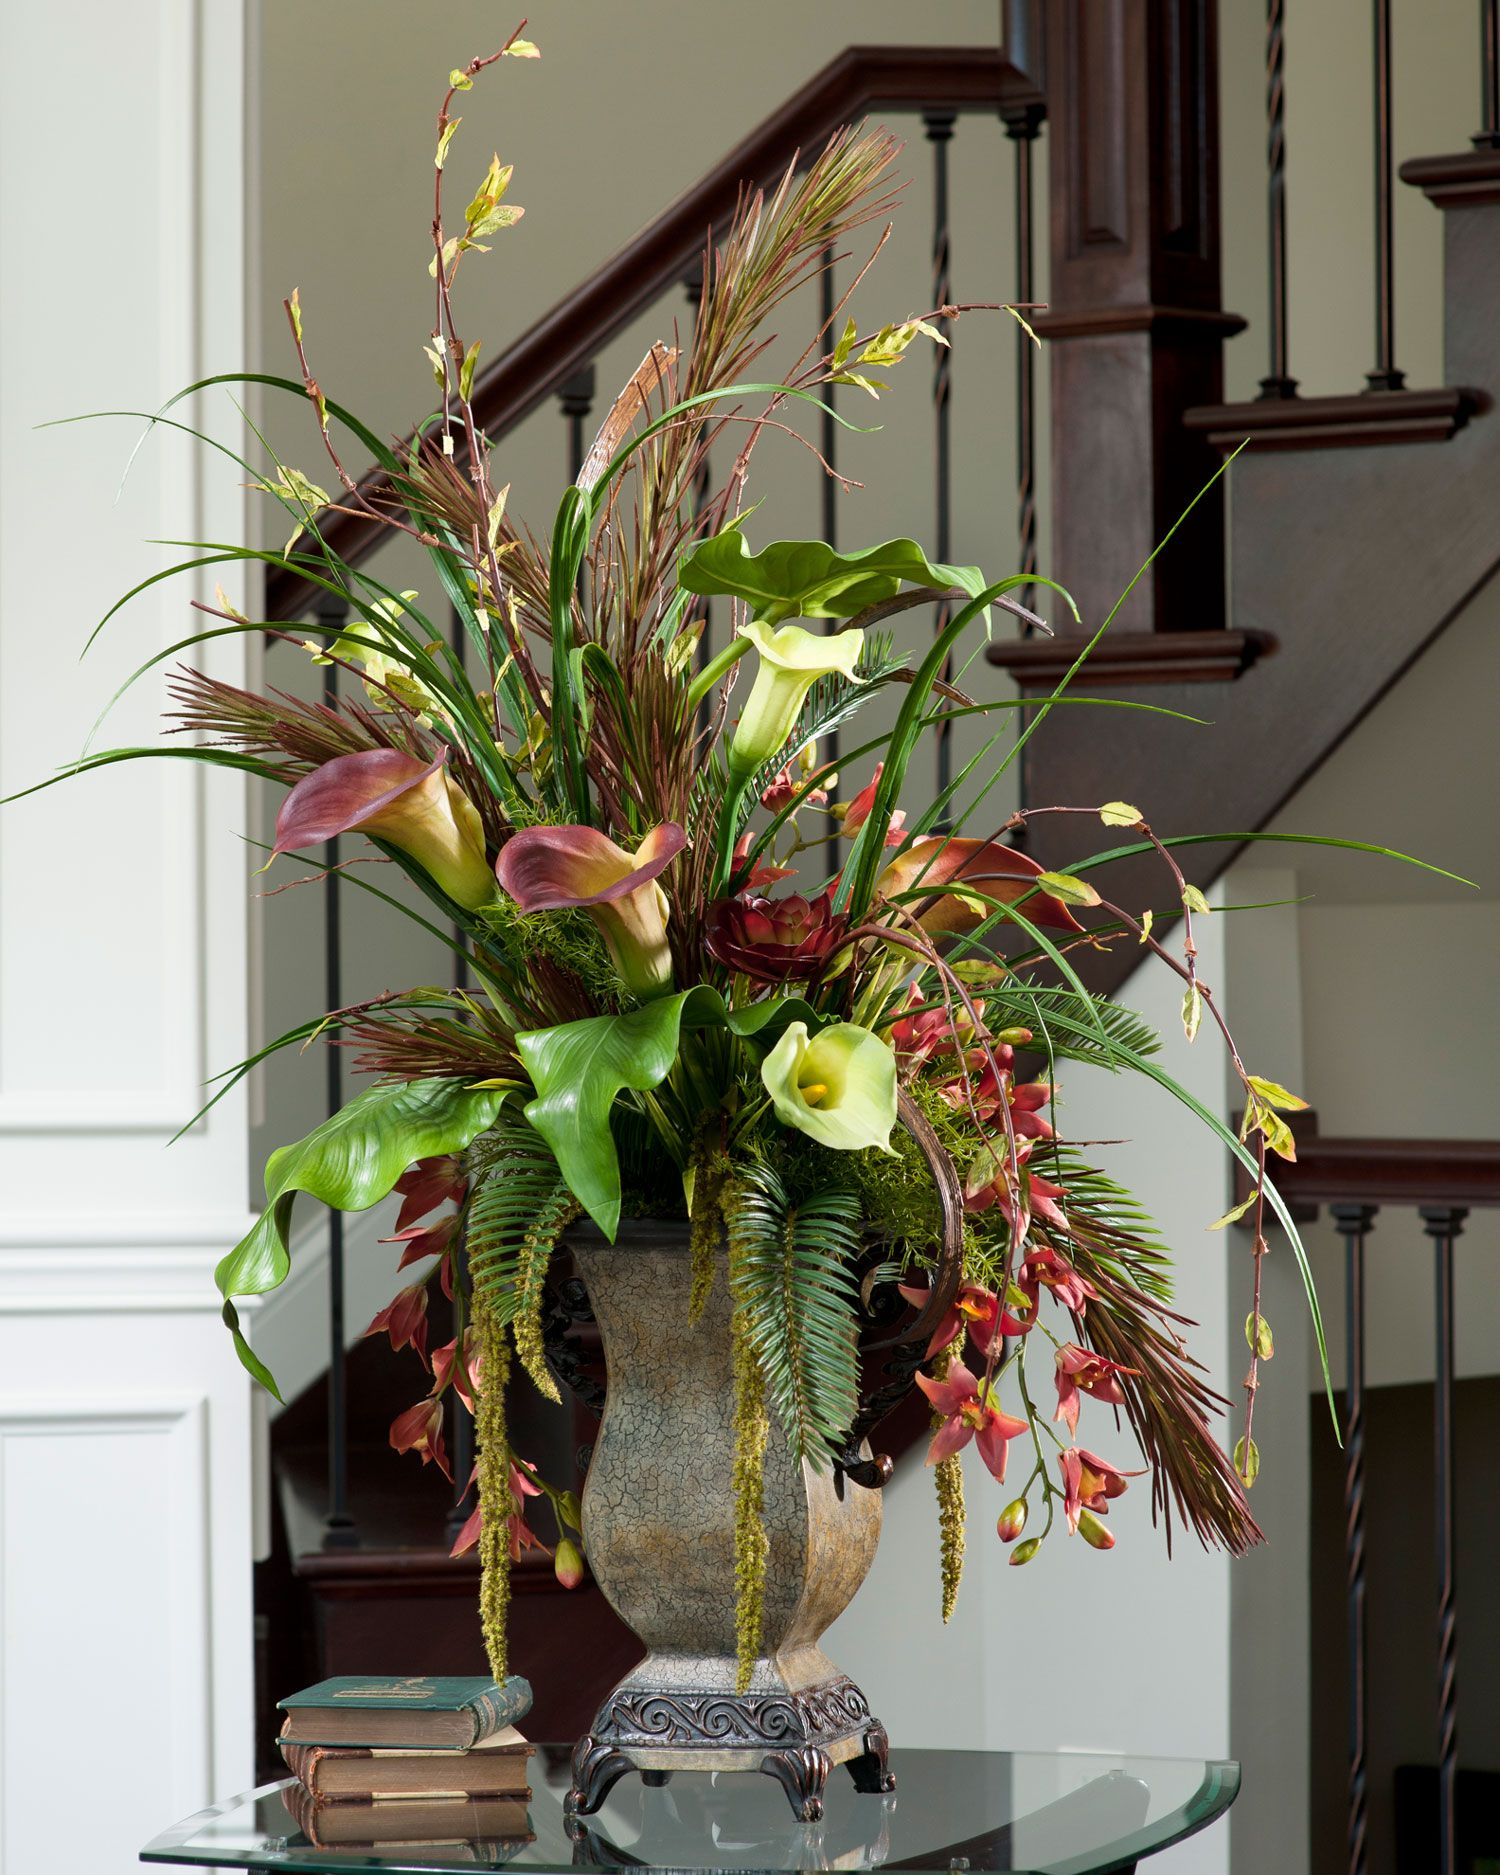 Fake Floral Arrangements For Home 7415d5eea139eb39e3040fe96bf25137 Jpg